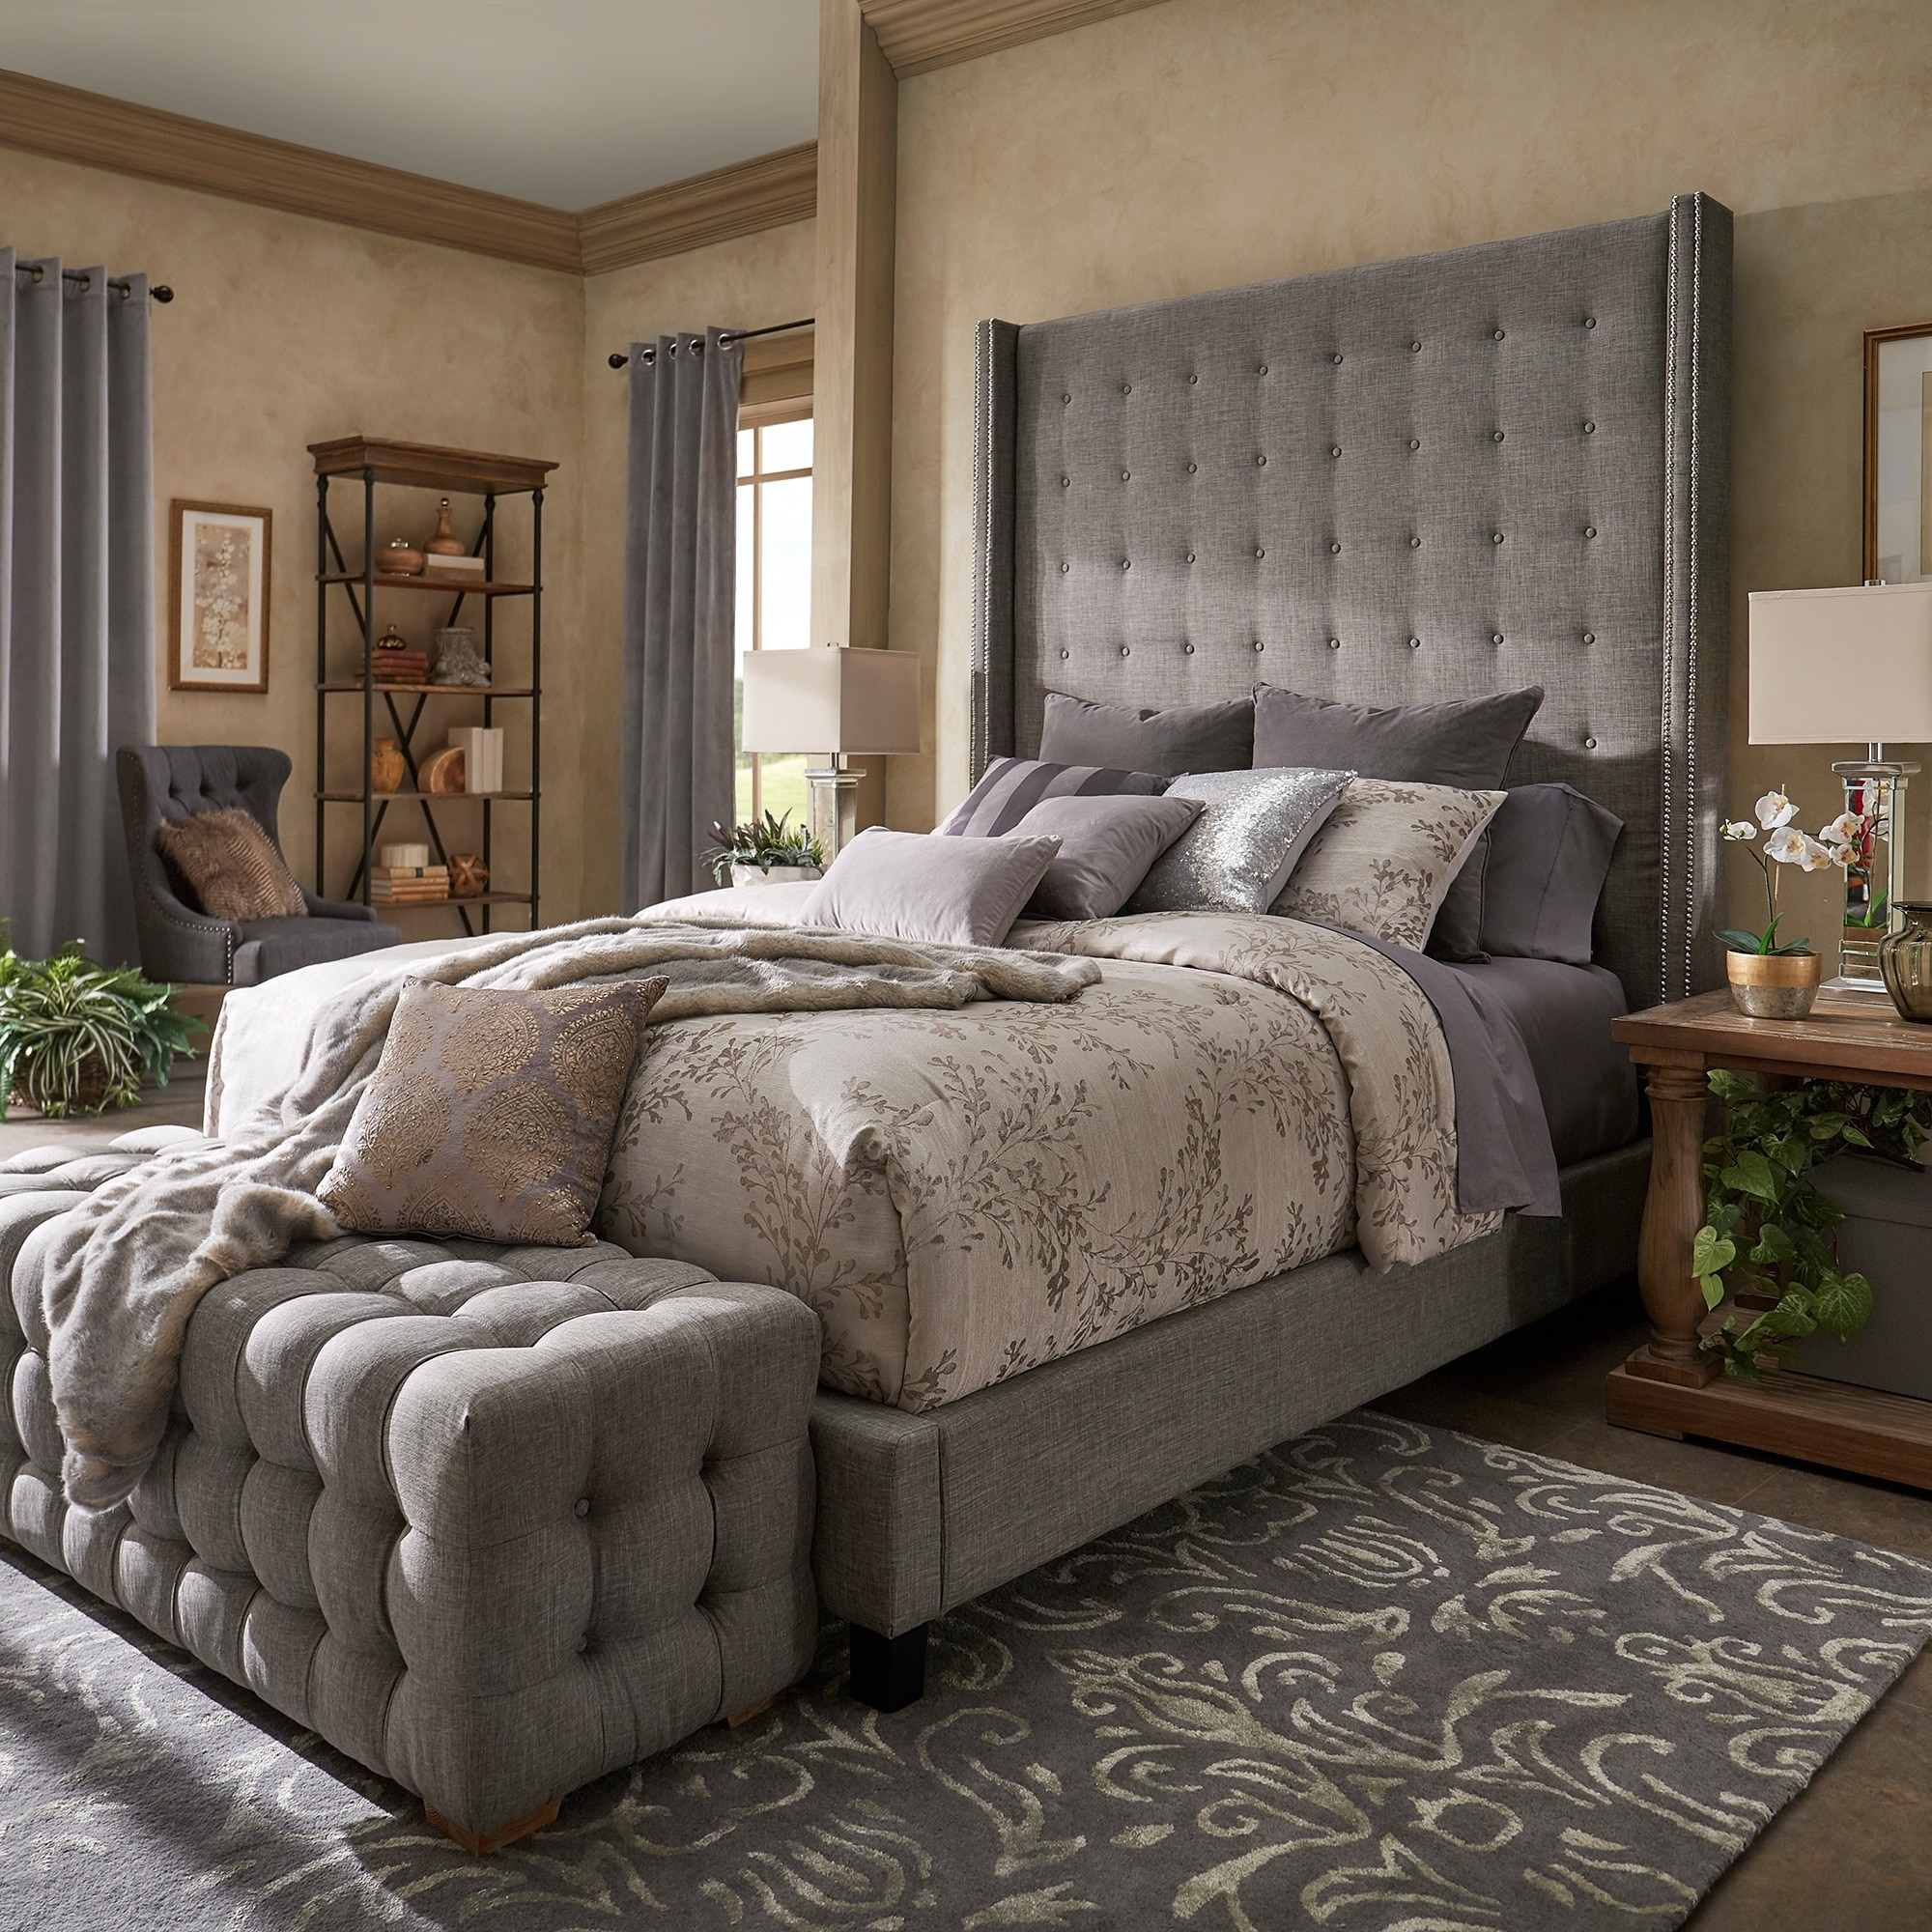 full fabric pics own winged decoration tufted bedroom king of panels twin buttons diy easy amys upholstered ideas make studded design glamorous black inspiring wingback size unique to headboard frame and inspiration microfiber diamond headboards wall interesting white your for